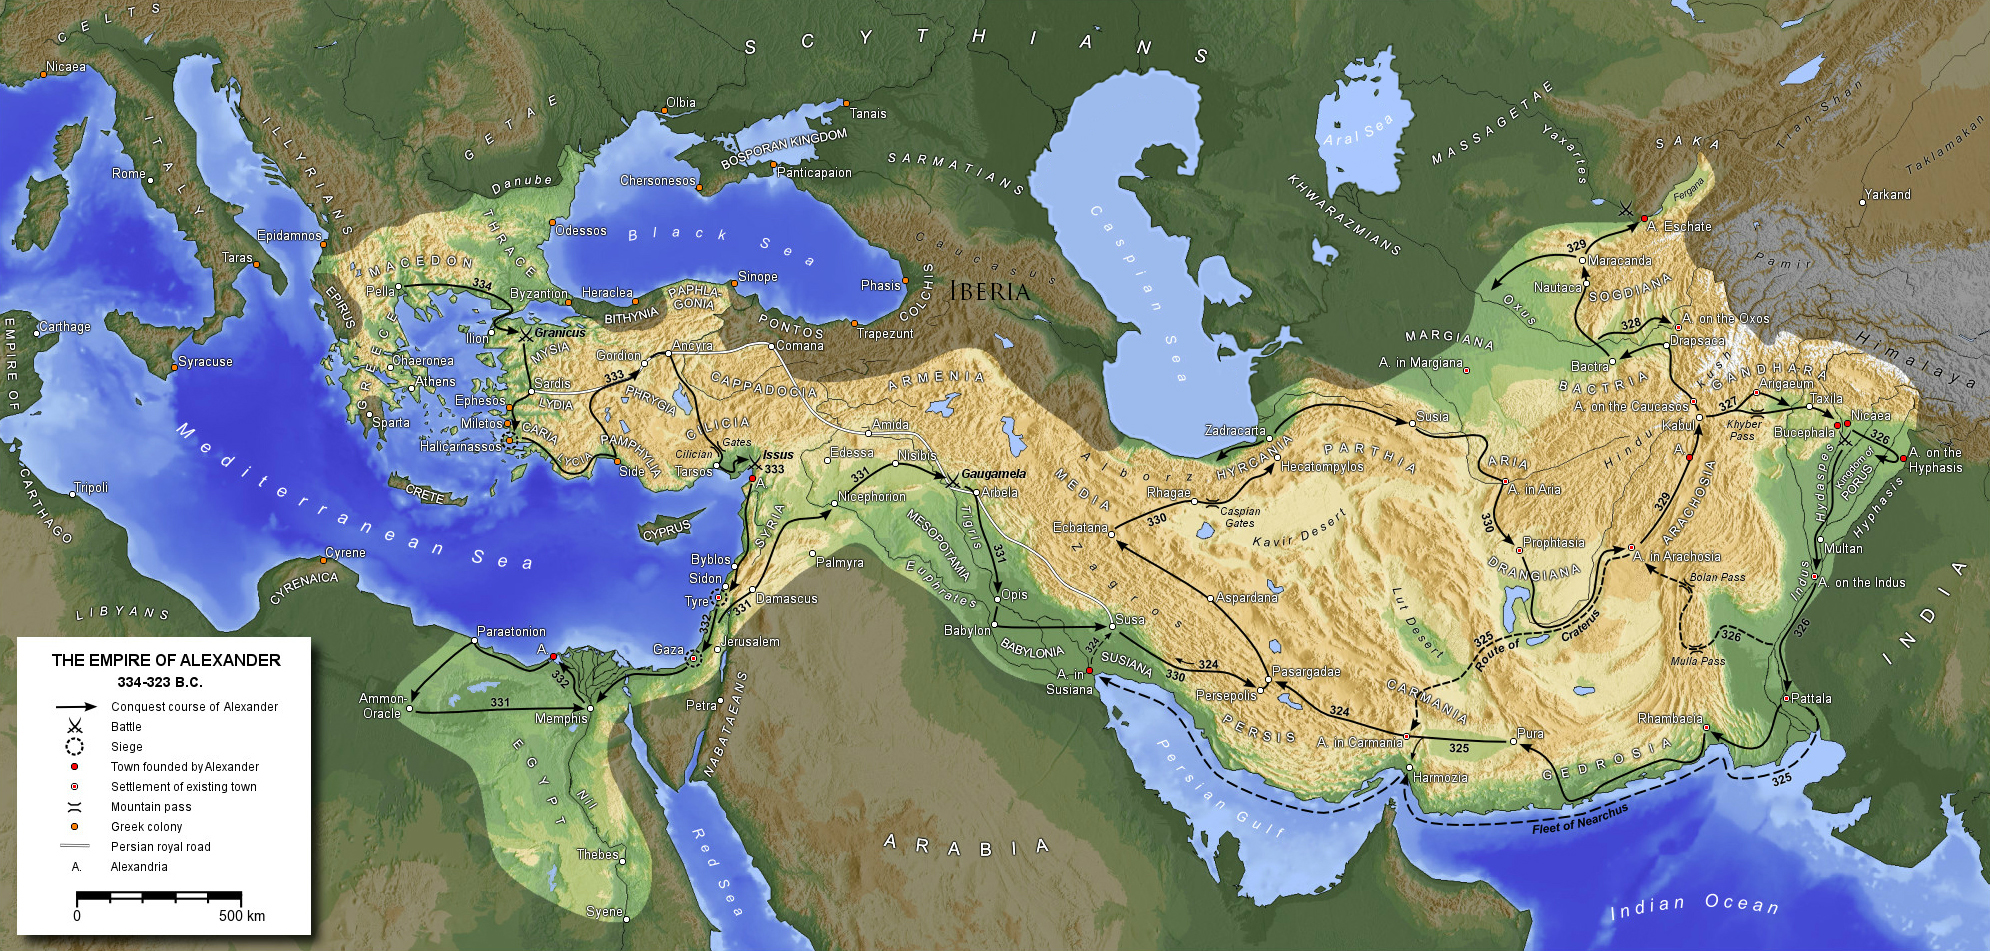 https://upload.wikimedia.org/wikipedia/commons/4/40/MacedonEmpire.jpg